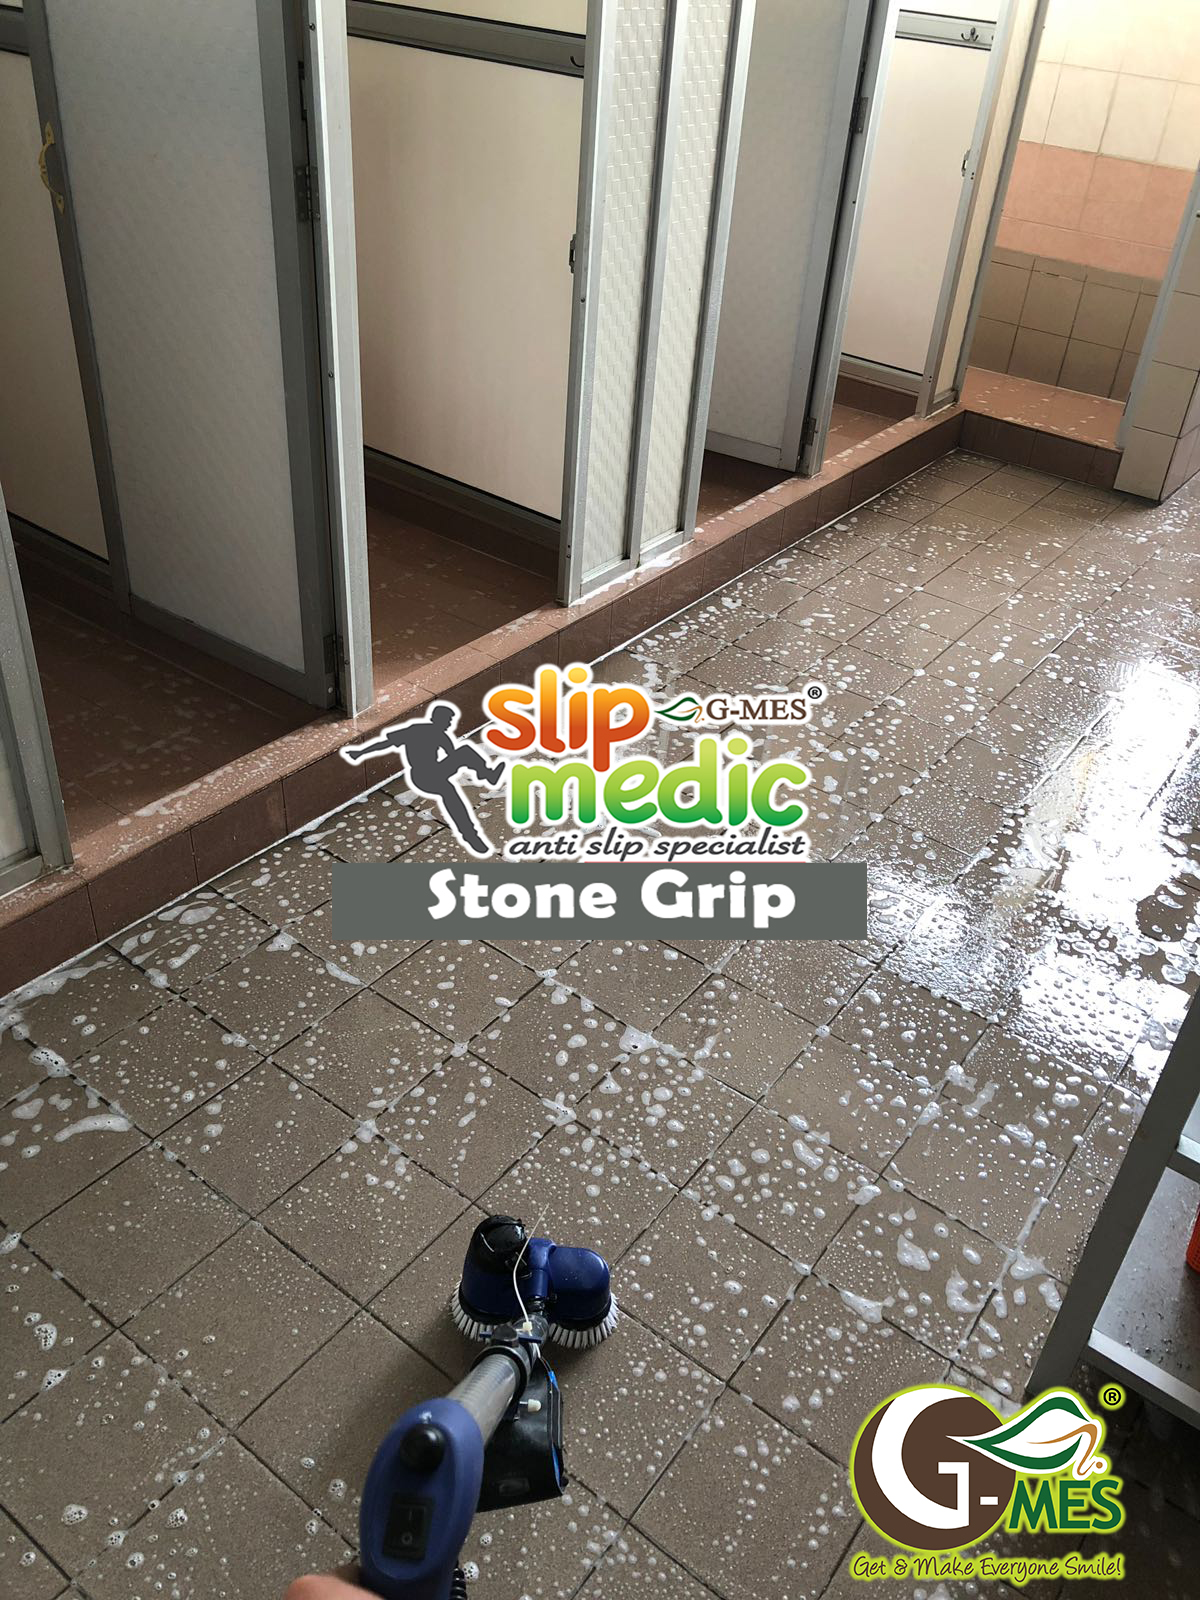 http://www.gmesintl.com/wp-content/uploads/2018/09/G-MES-SlipMedic-Stone-Grip-Review.mp4